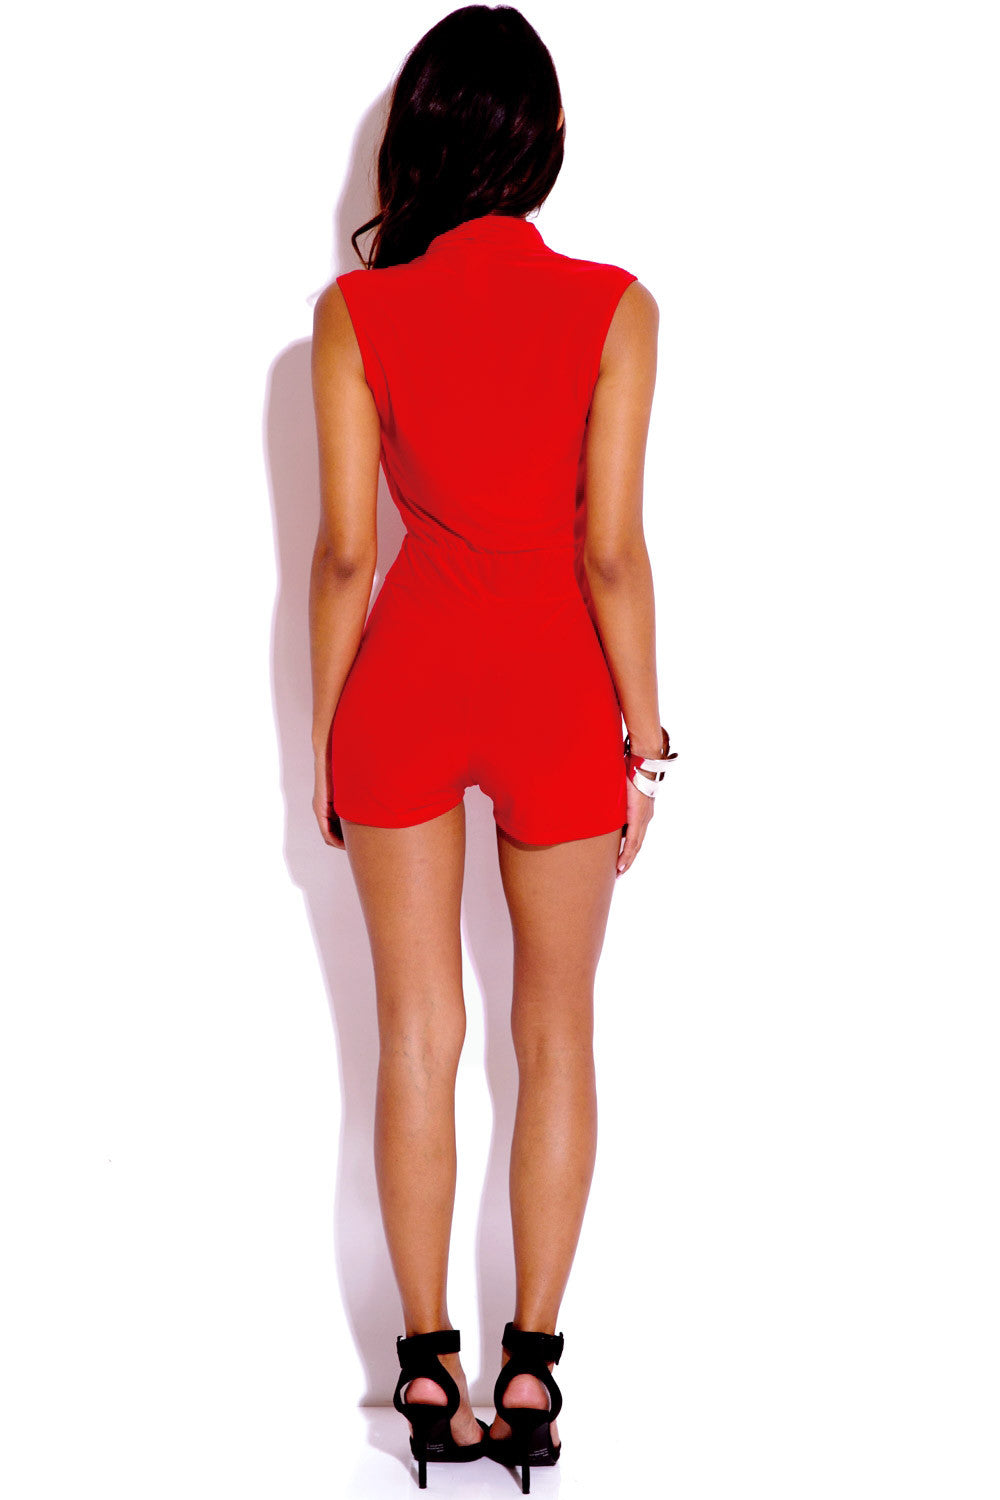 Fire Romper - waist trainer, dress - waist trainer, swancoast.com ann chery,